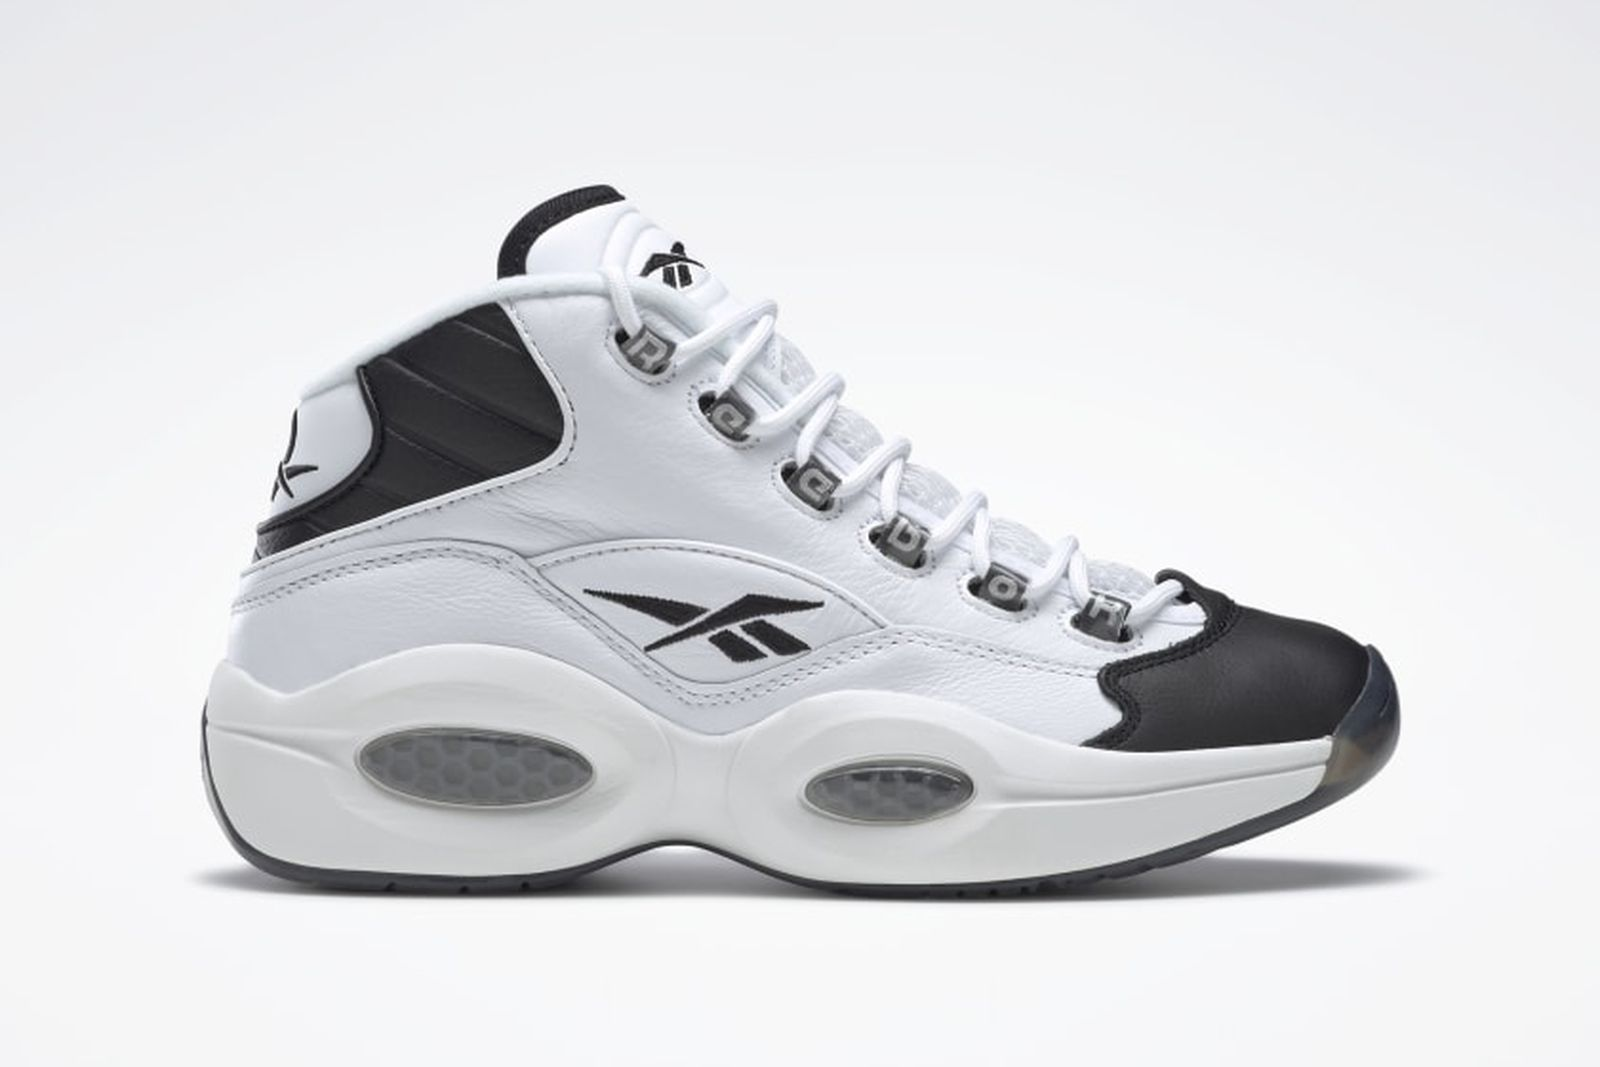 daily-sneaker-news-03-01-2021-2-01